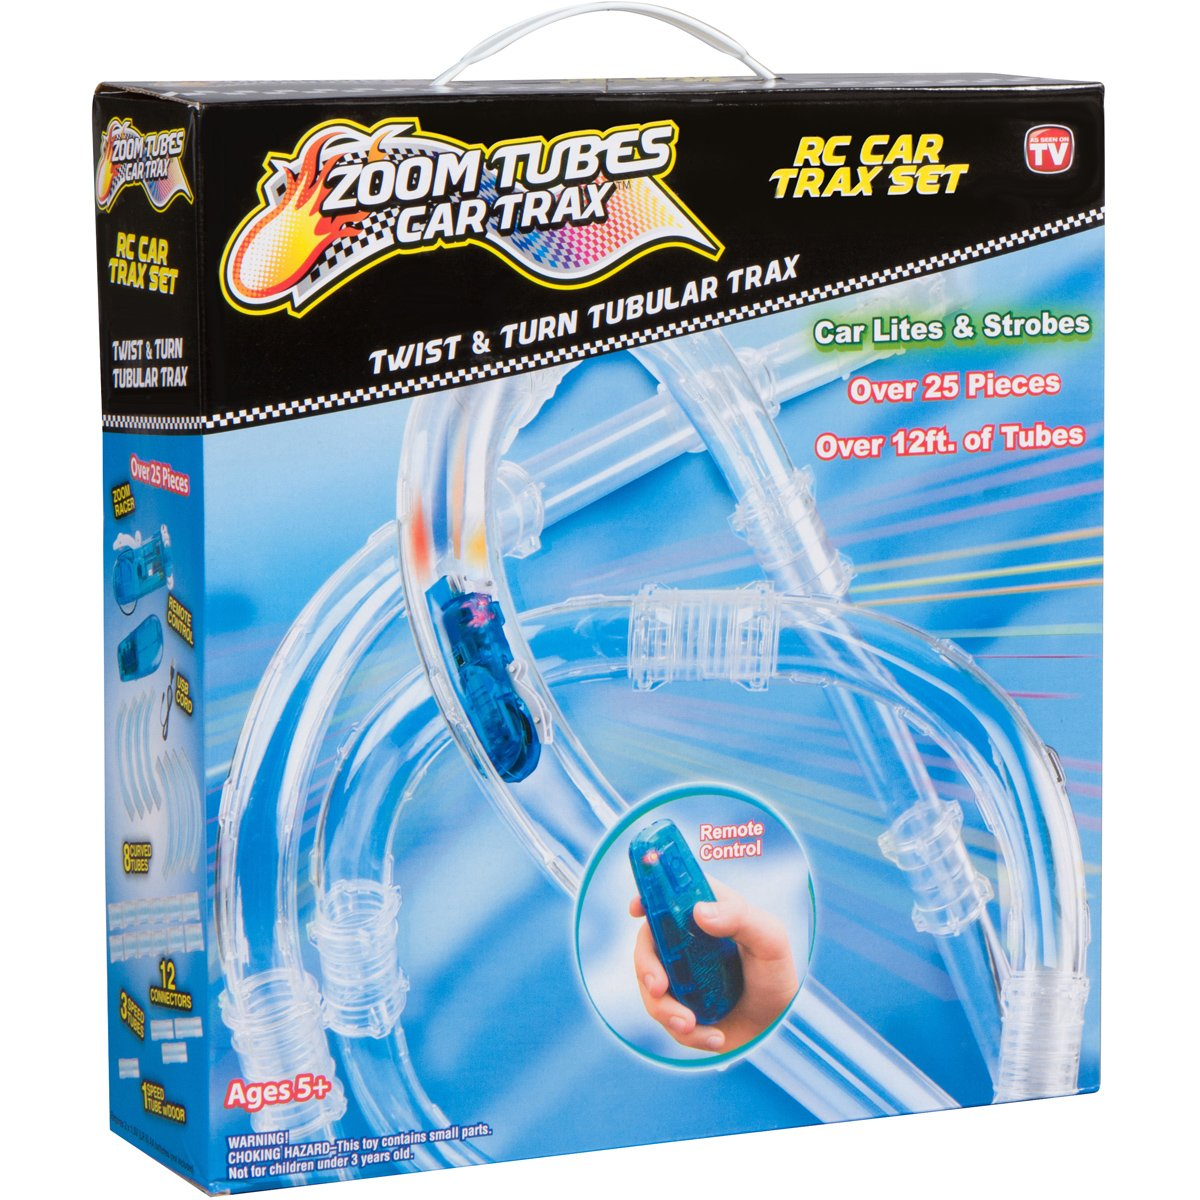 ZOOM TUBES CAR TRAX, 25-Pc RC Car Trax Set with 1 Blue Racer and Over 12ft of Tubes (As Seen on TV)